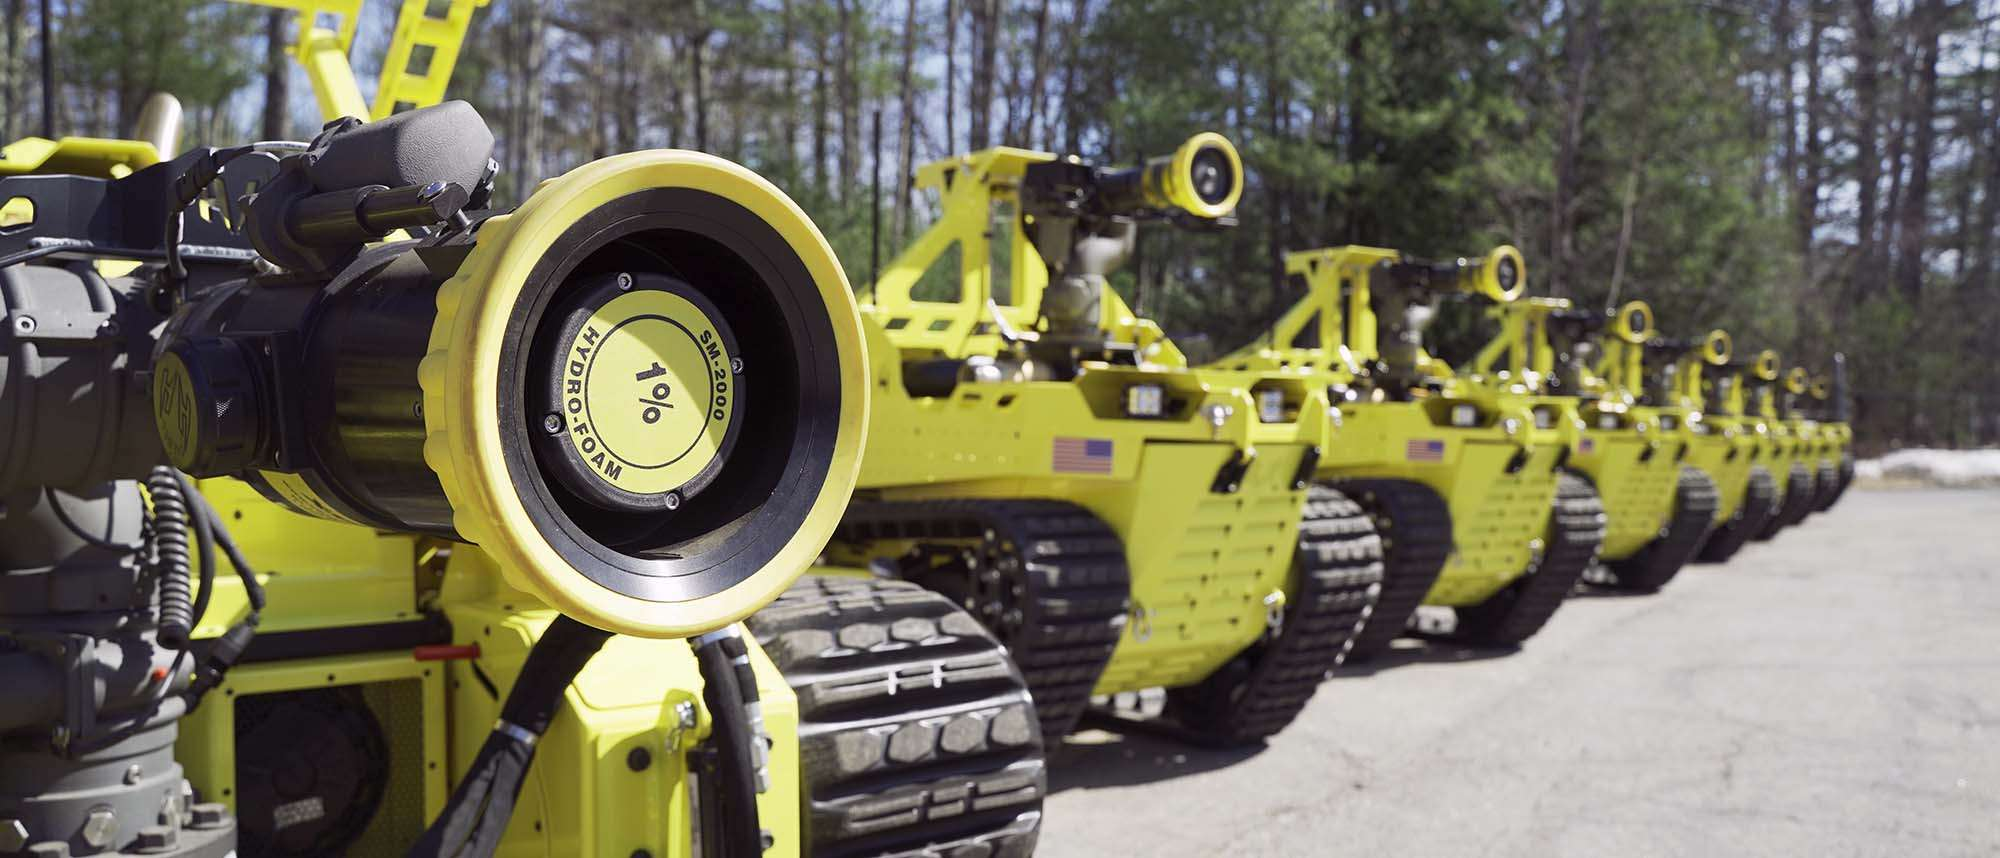 Yellow Thermite vehicles lined up in  a row outside